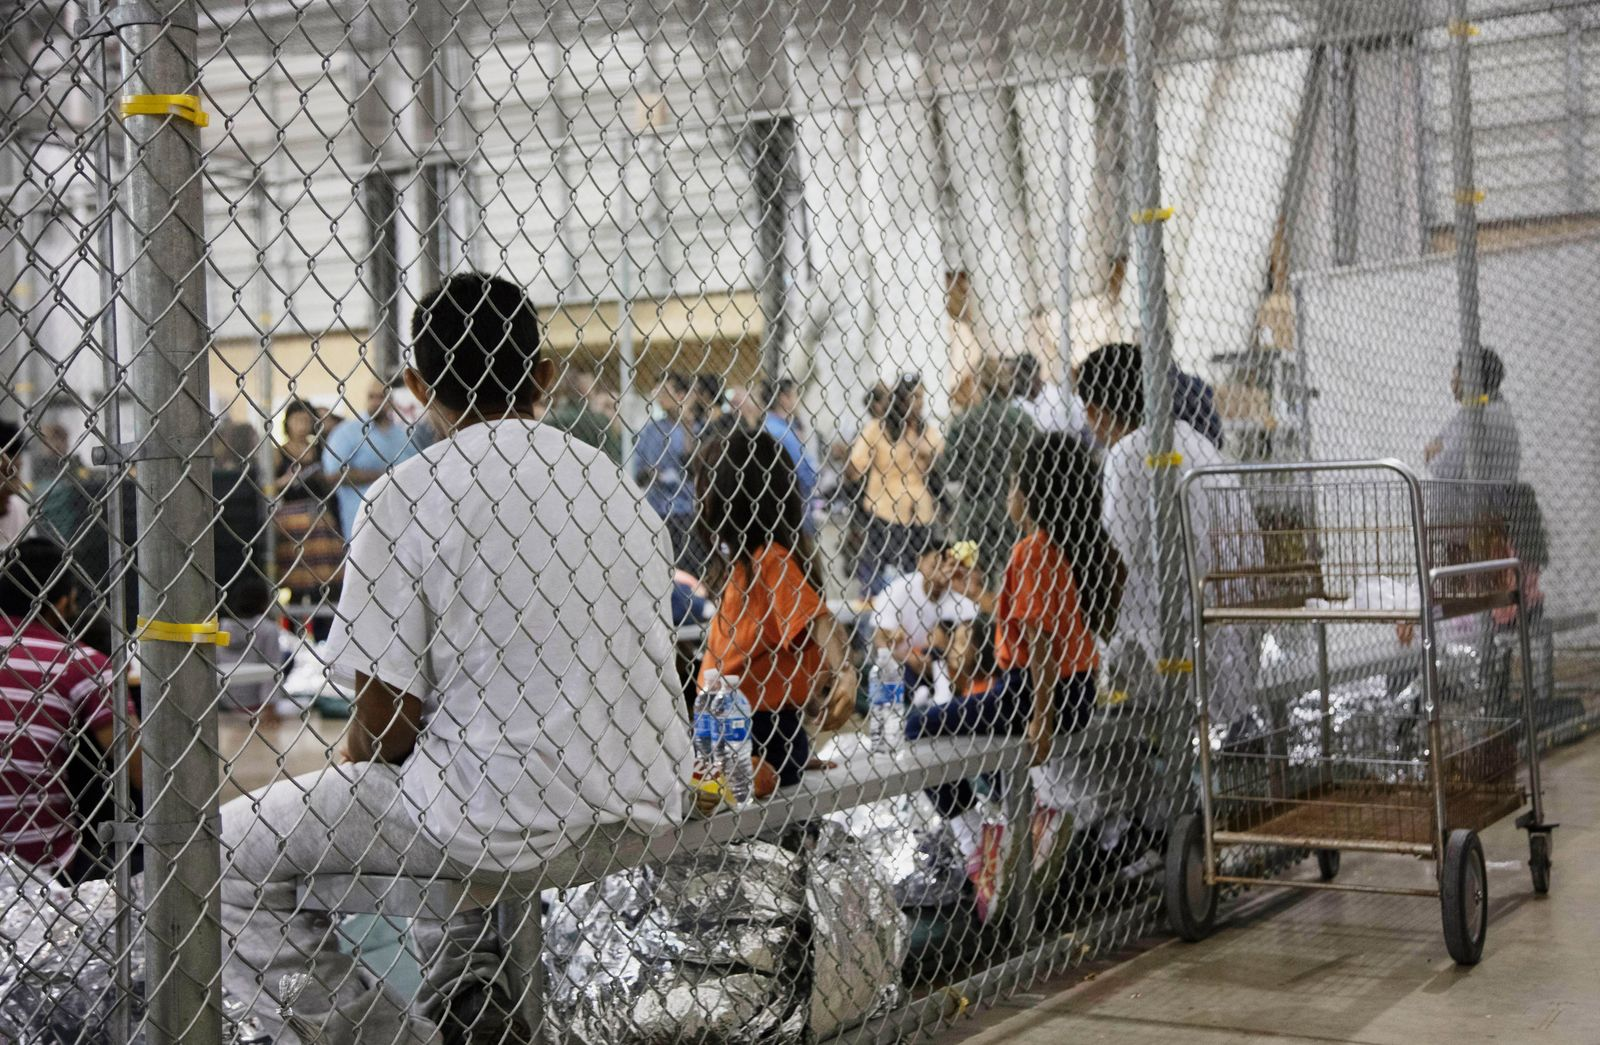 FILE - In this June 17, 2018 file photo provided by U.S. Customs and Border Protection, people who've been taken into custody related to cases of illegal entry into the United States, sit in one of the cages at a facility in McAllen, Texas. (U.S. Customs and Border Protection's Rio Grande Valley Sector via AP)